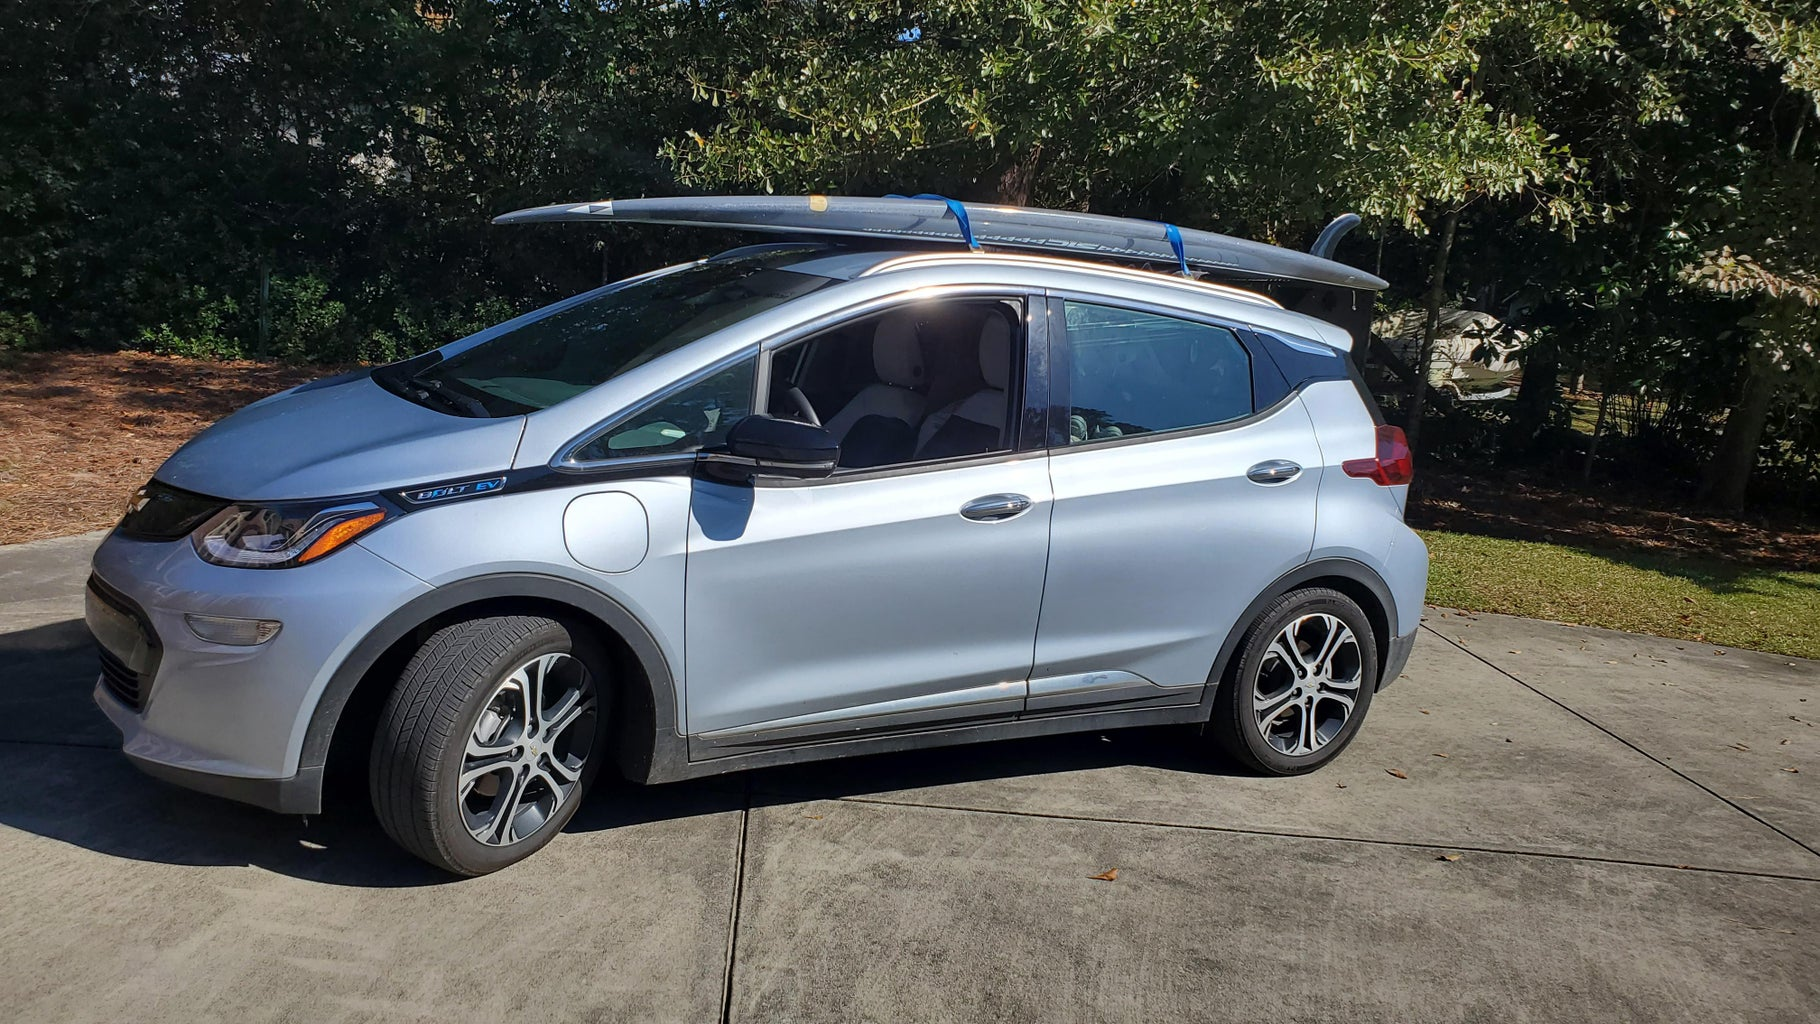 Stand Up Paddleboard SUP Roof Rack for Chevy Bolt EV (Chevrolet Bolt)